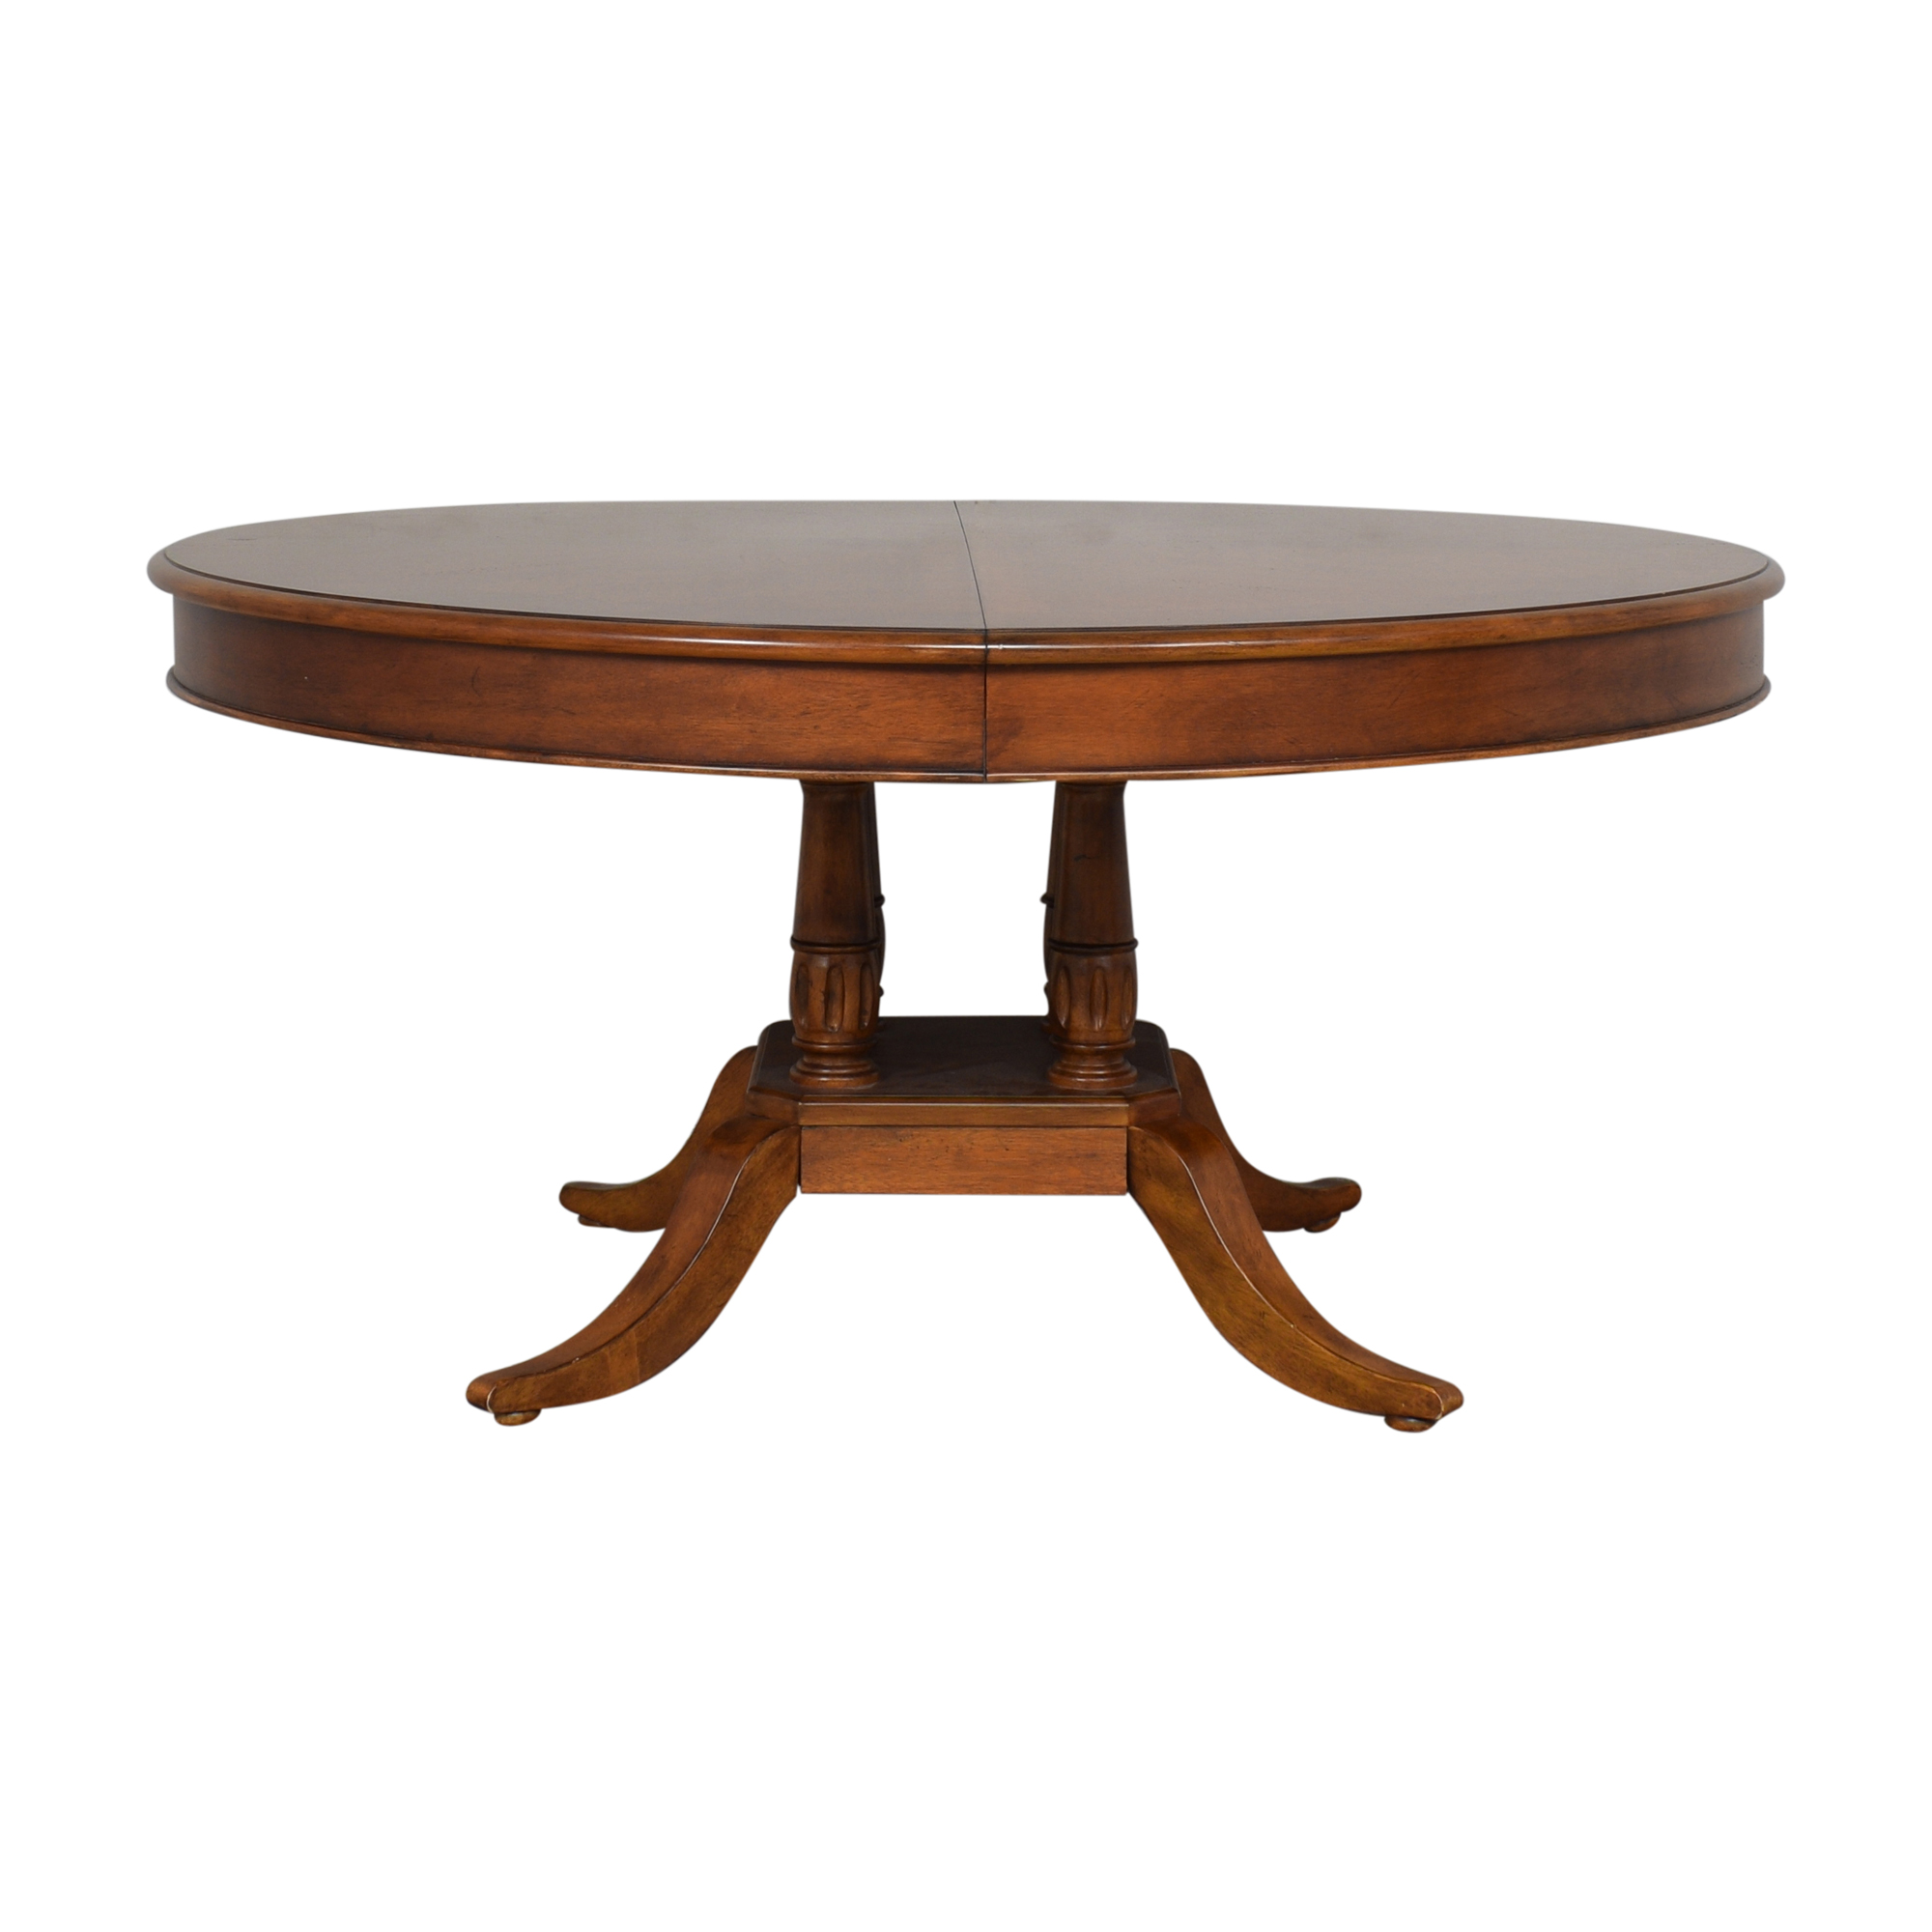 Bassett Mirror Company Bassett Mirror Company Extendable Dining Table dimensions